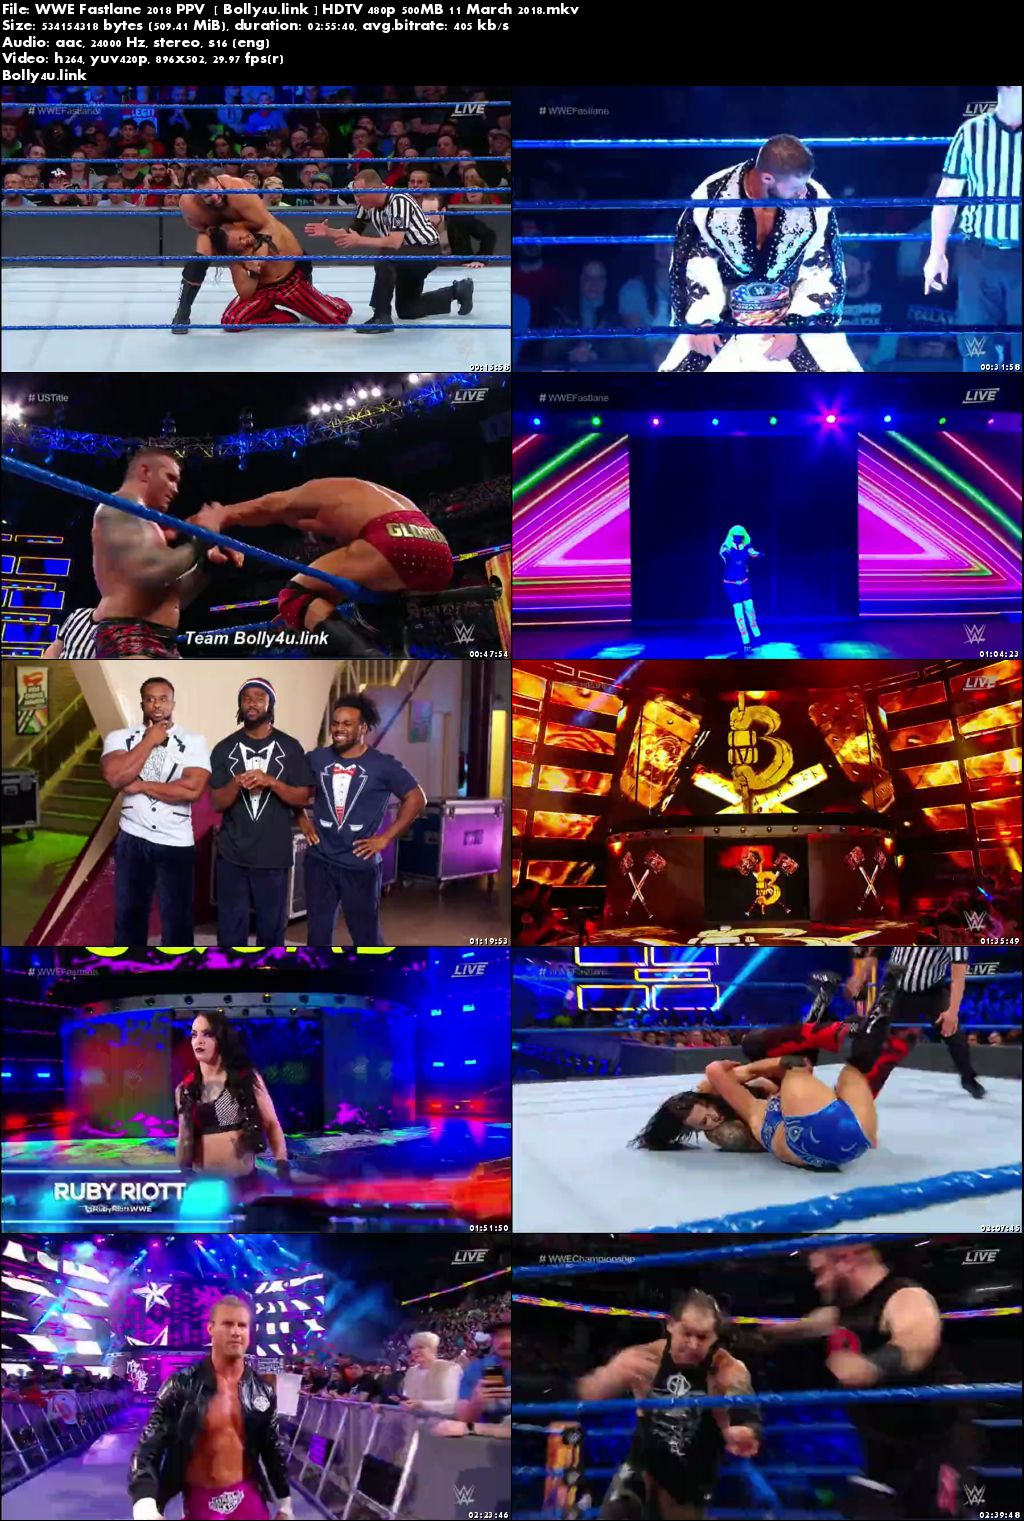 WWE Fastlane 2018 PPV HDTV 480p 500MB 11 March 2018 Download